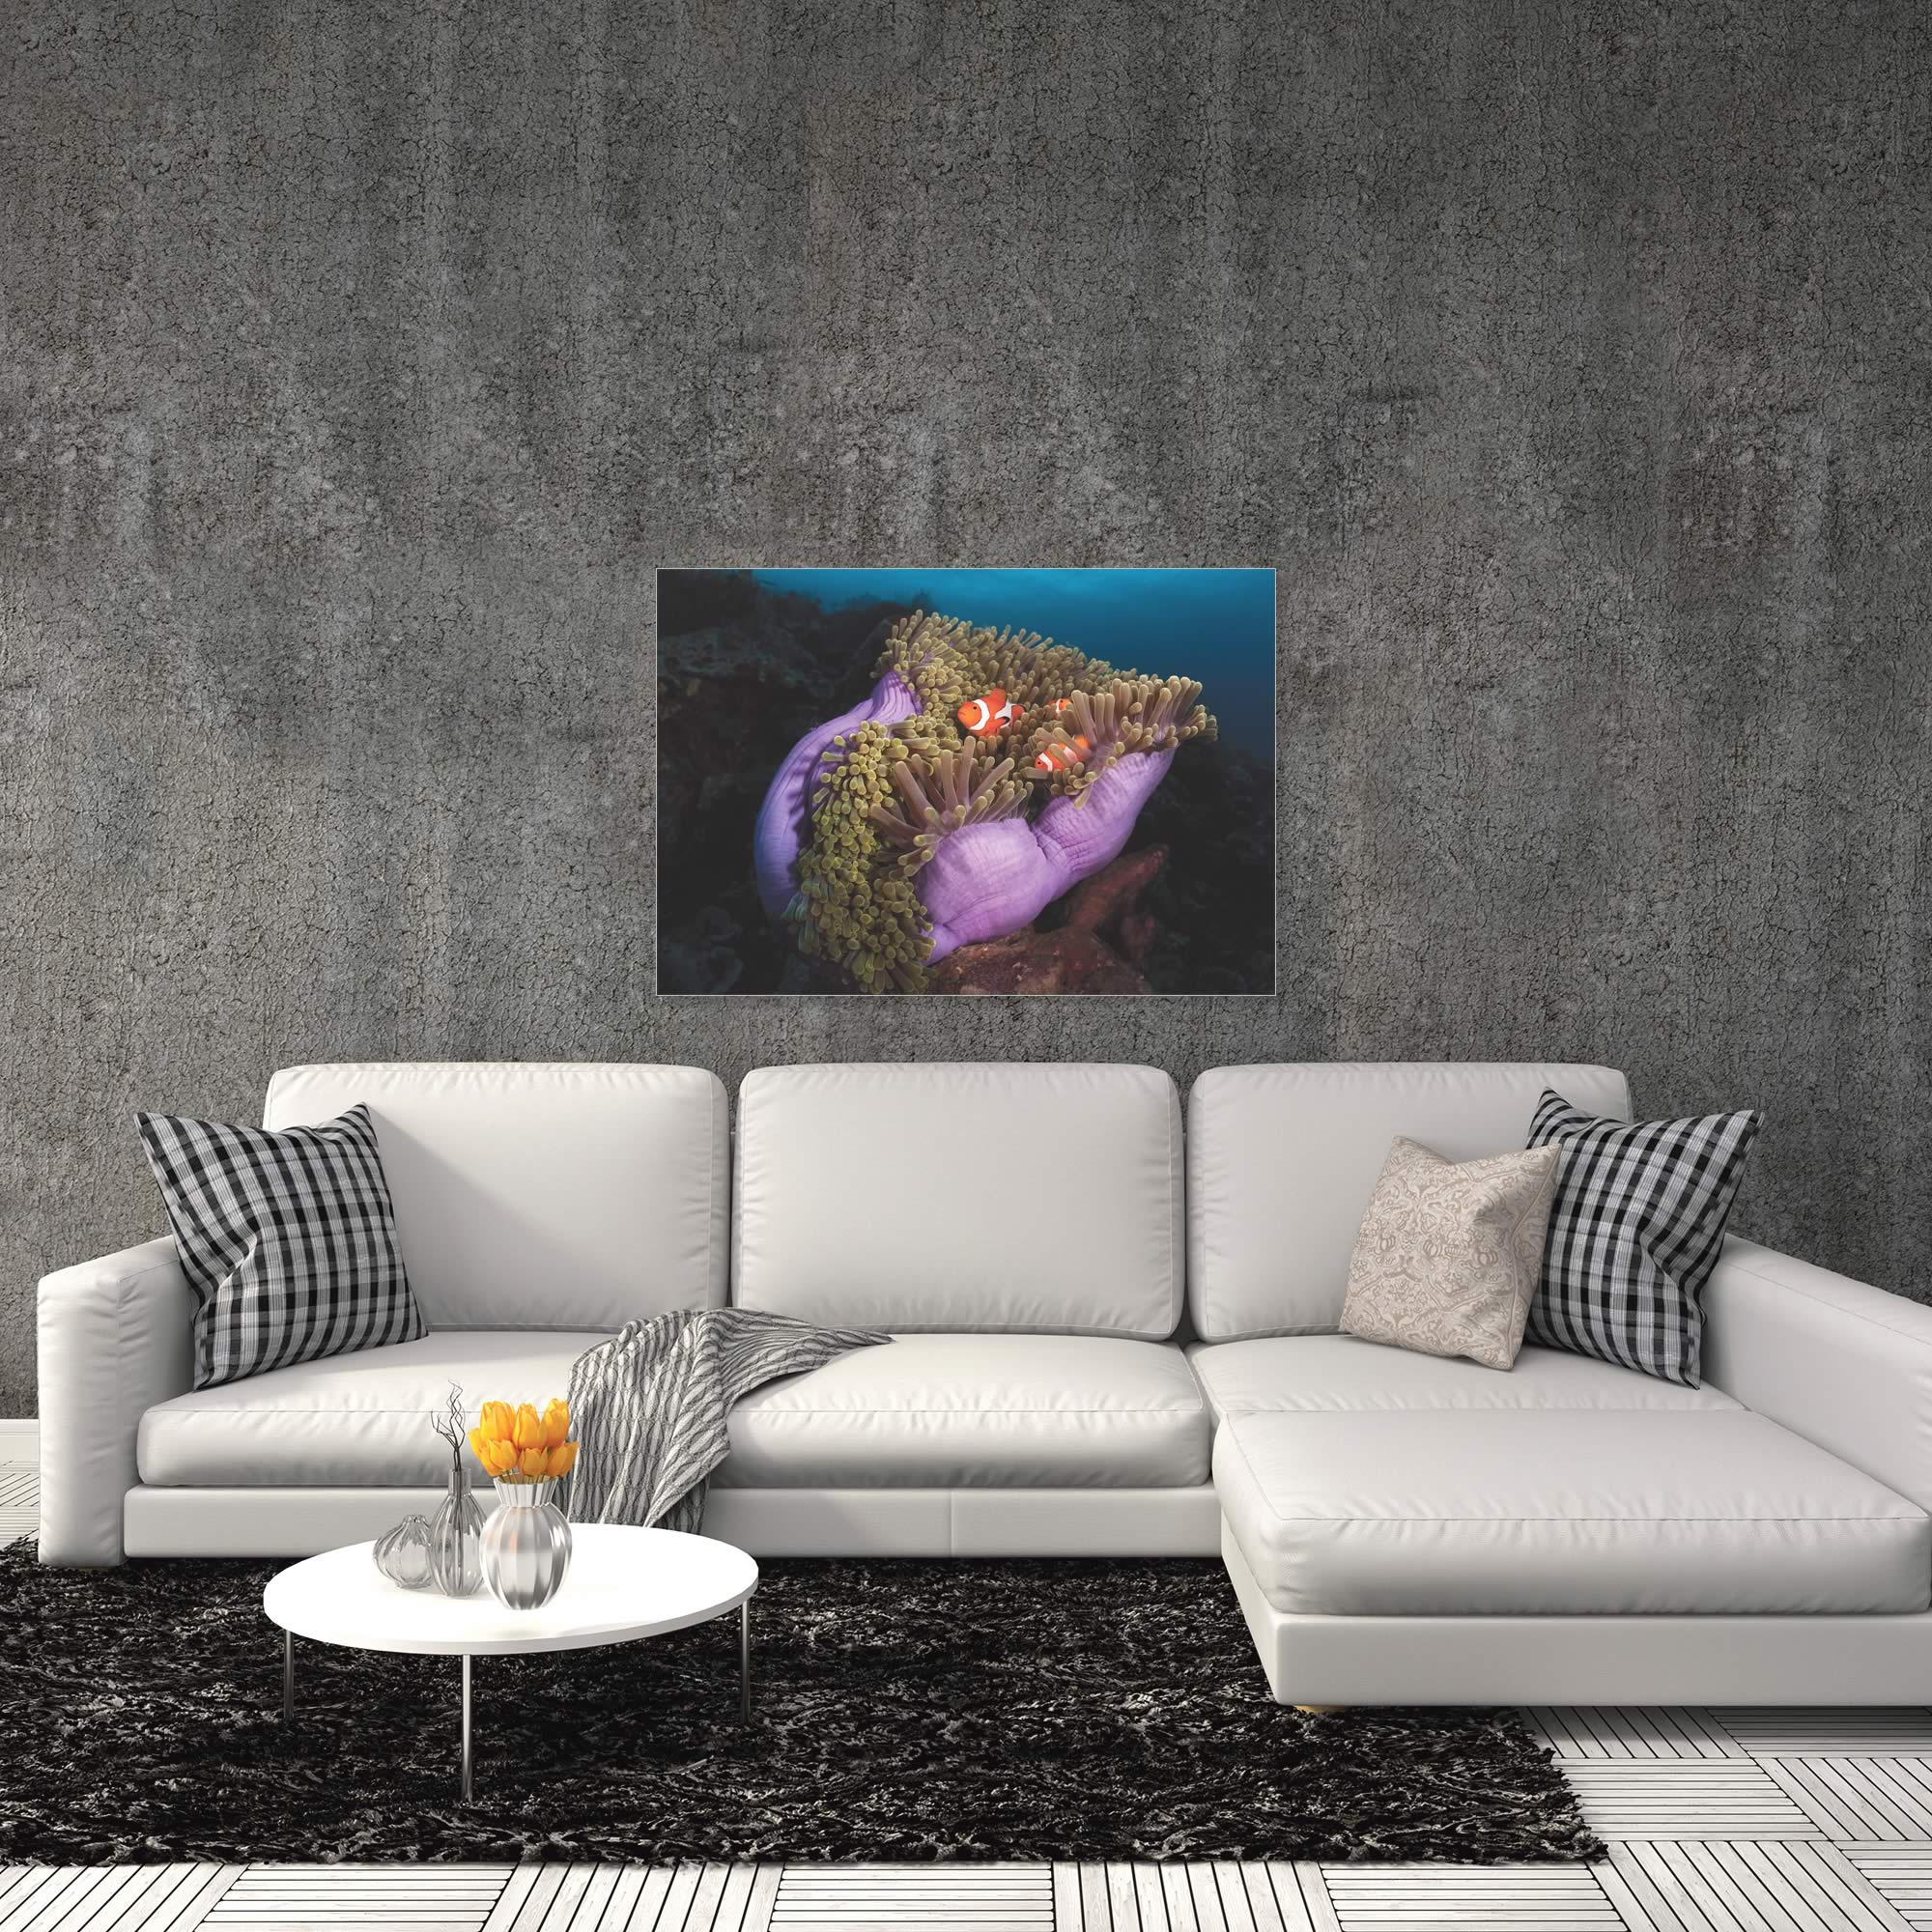 Clown Fish Anemone by Marco Fierli - Coastal Decor on Metal or Acrylic - Alternate View 1